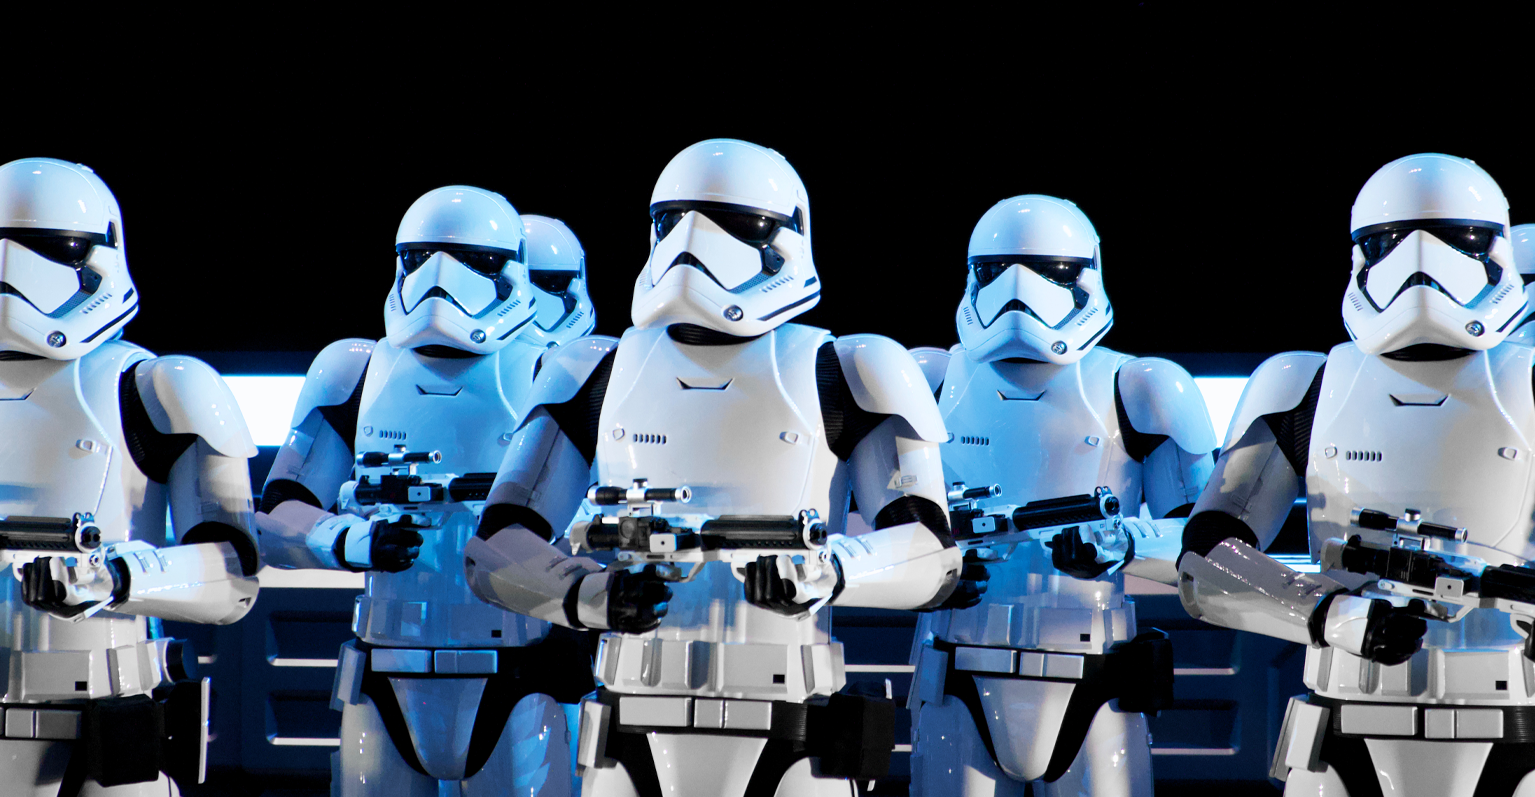 Imperial Stormtroopers